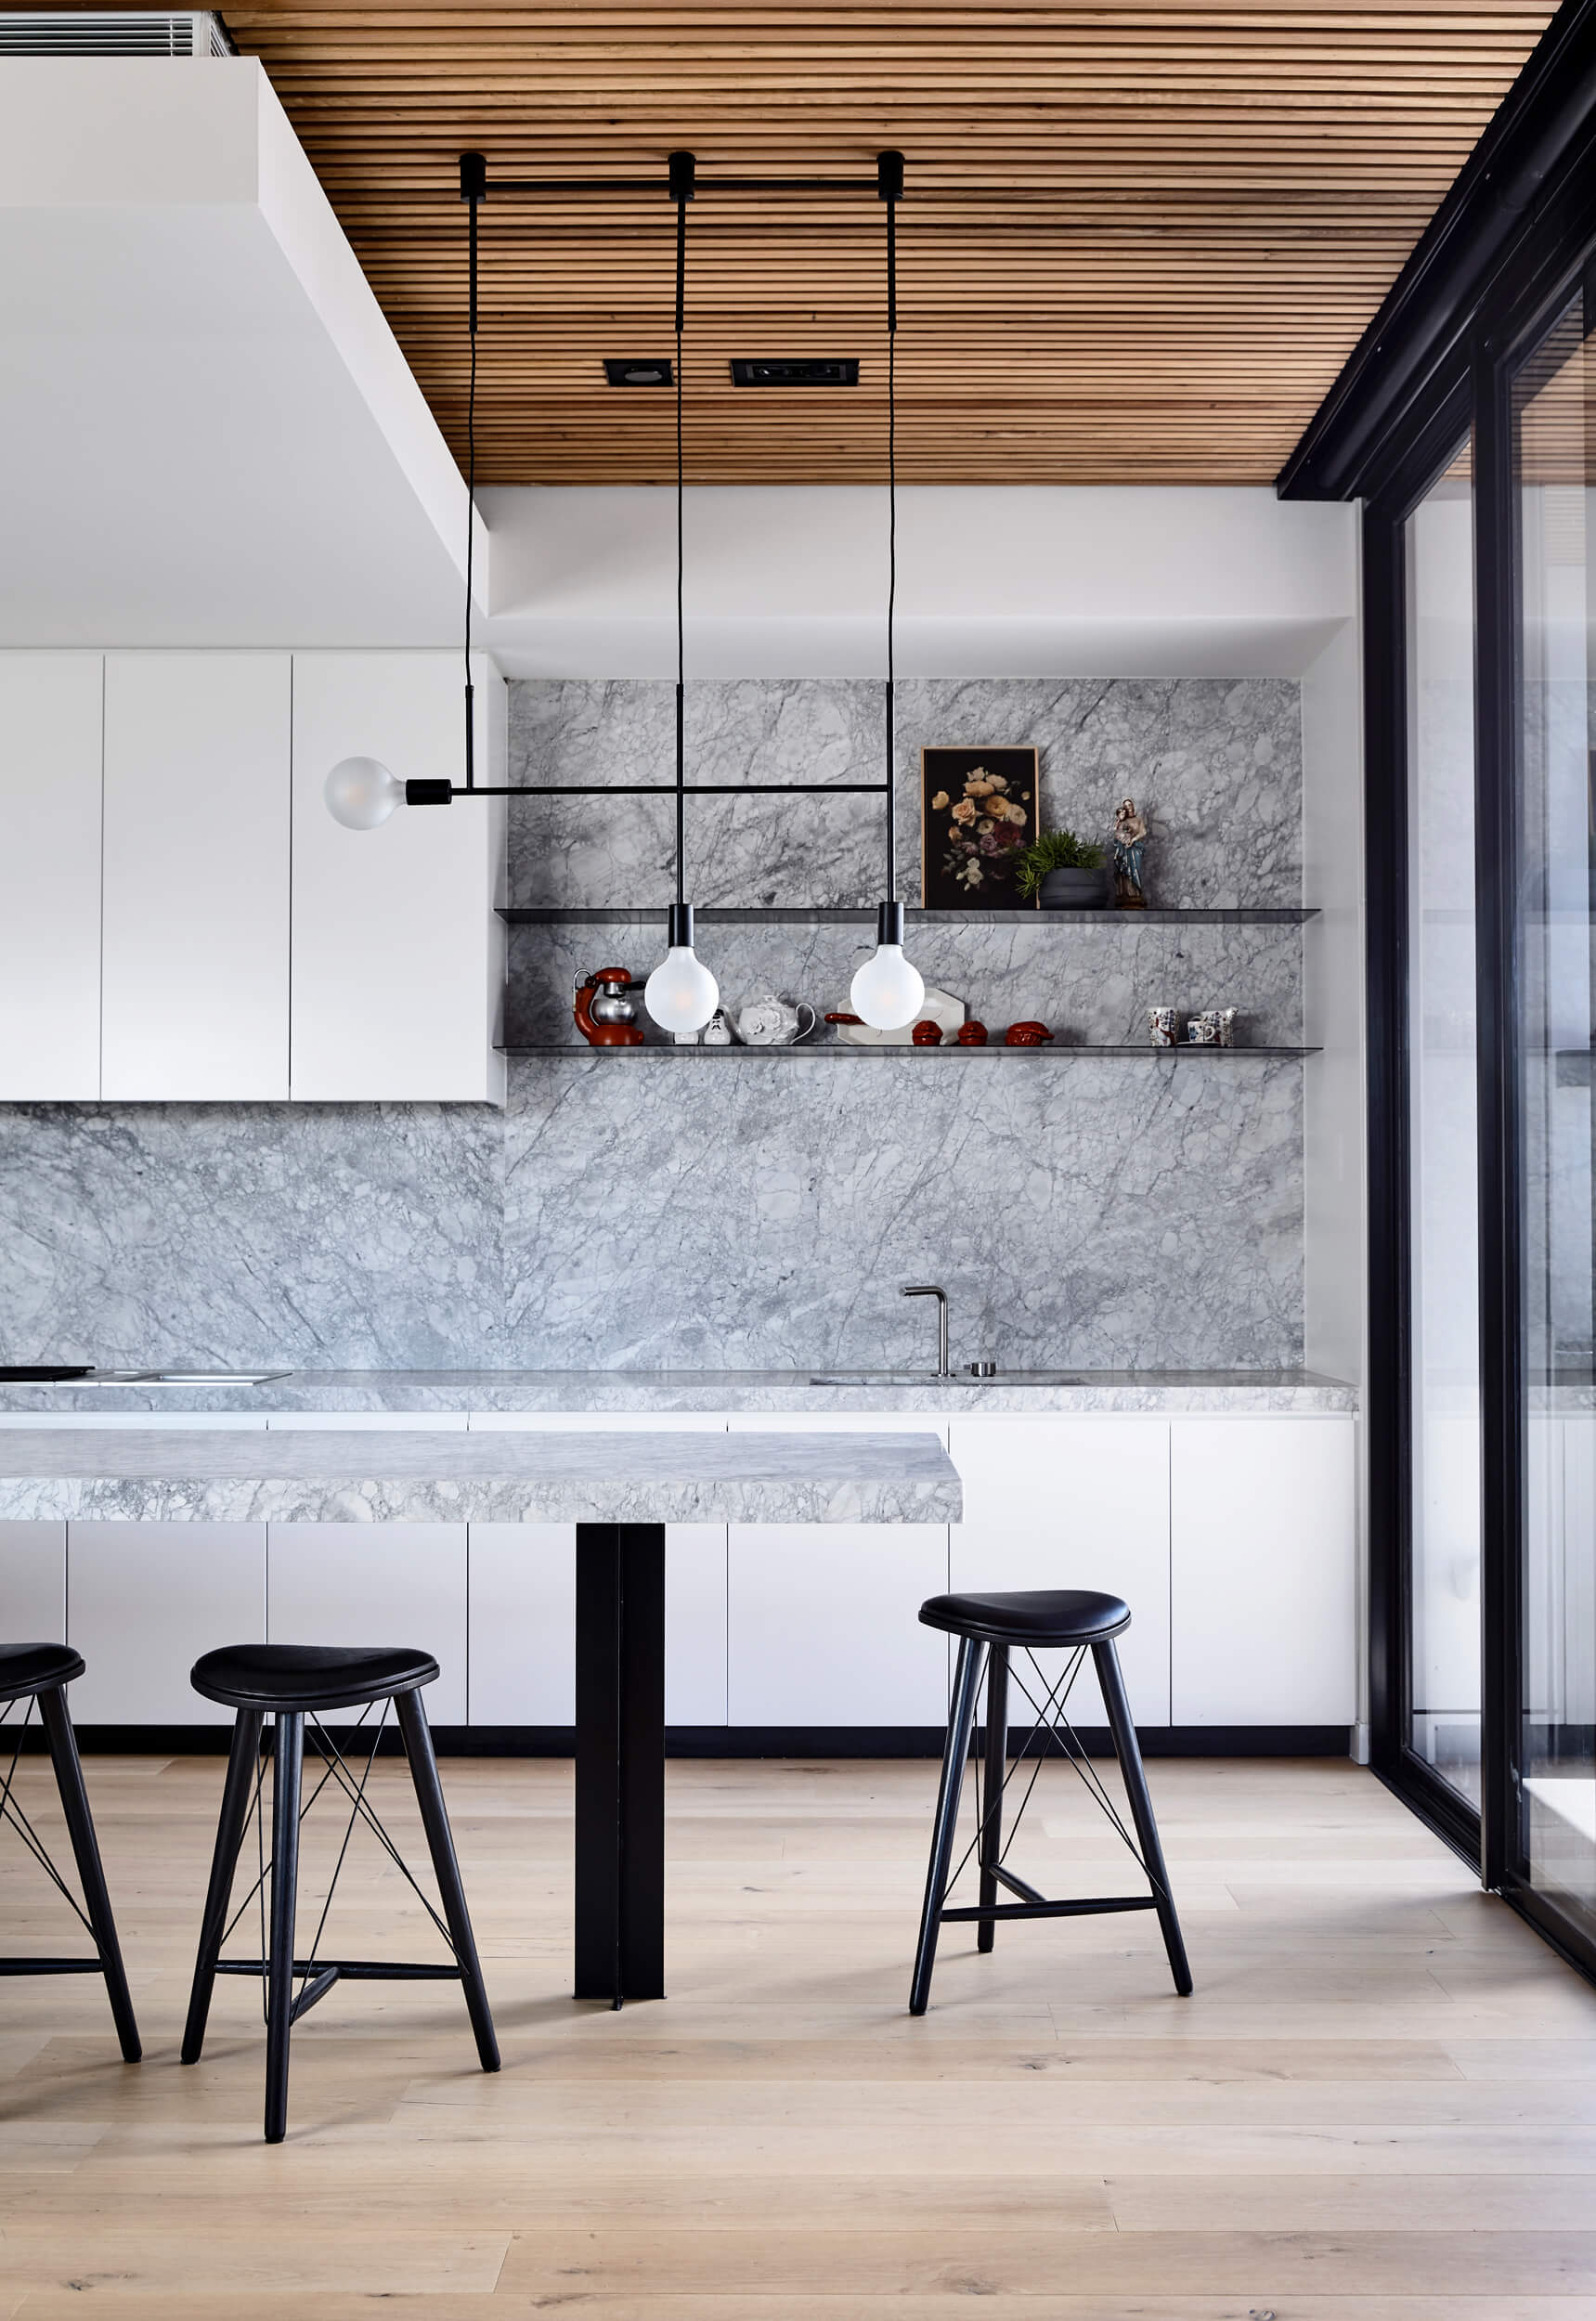 Holly Penthouse By Tom Robertson Architects Project Feature Melbourne, Australia Local Australian Design & Architectureholly R V Derek024